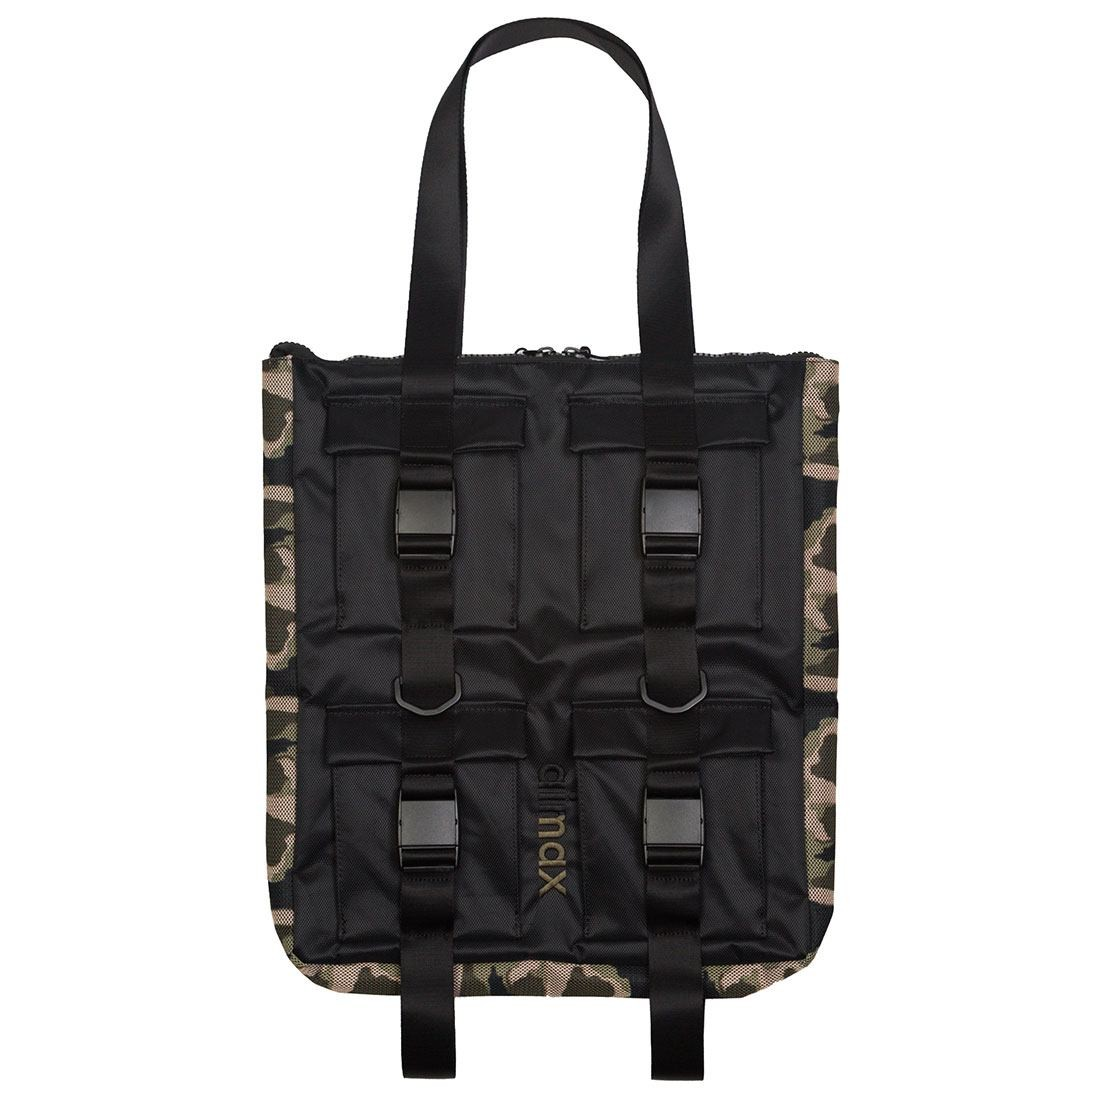 Nike Men Nk Airmax Tote - Camo Clash (black) 1S